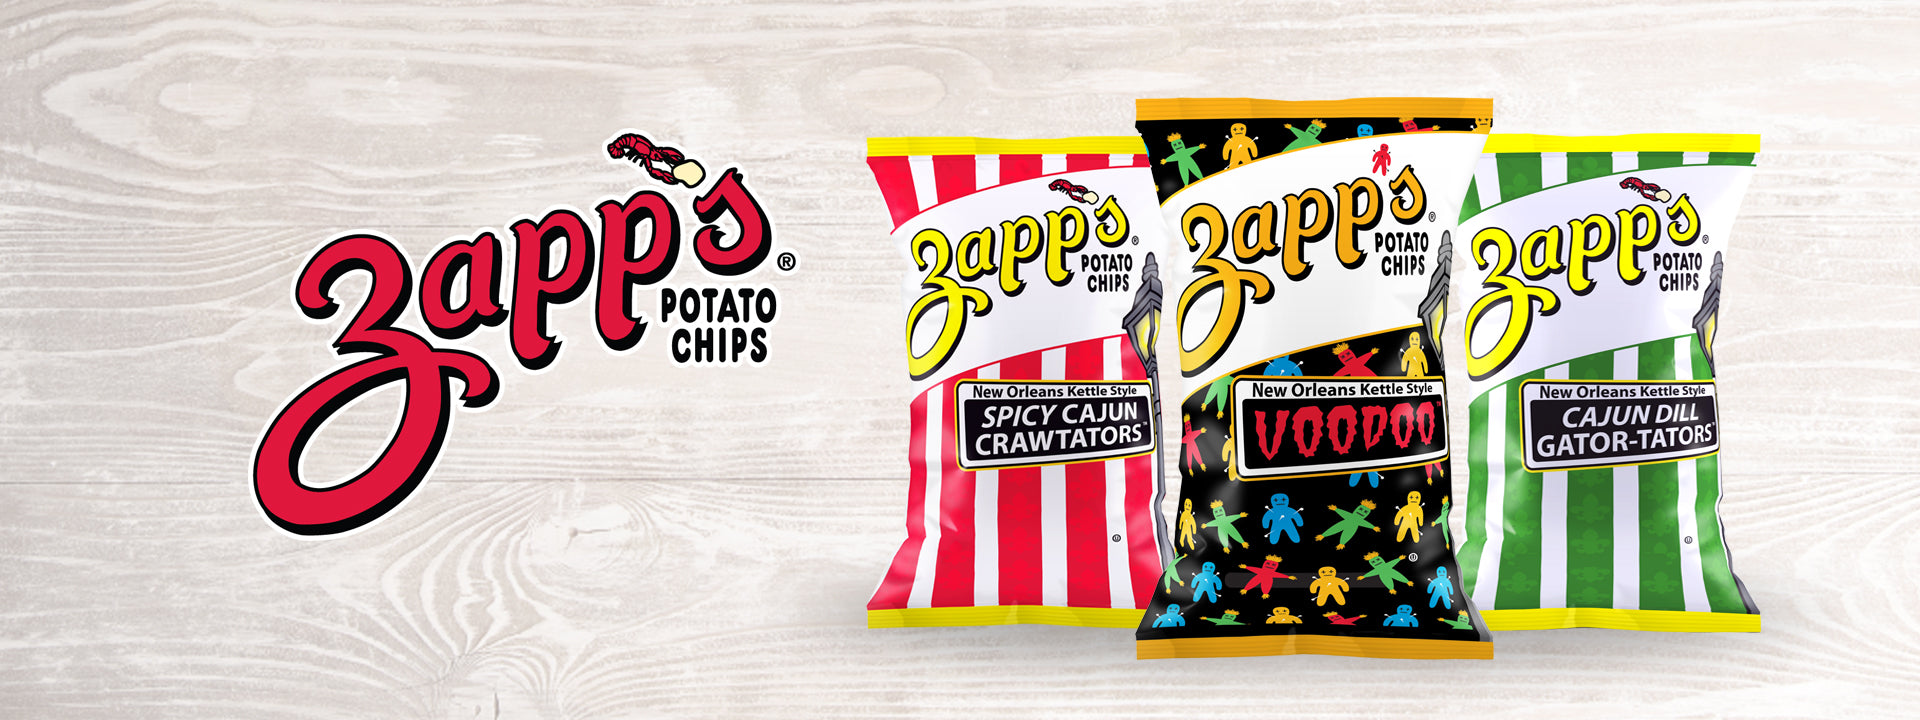 About Zapps Potato Chips Utz Quality Foods Our Snack Brands